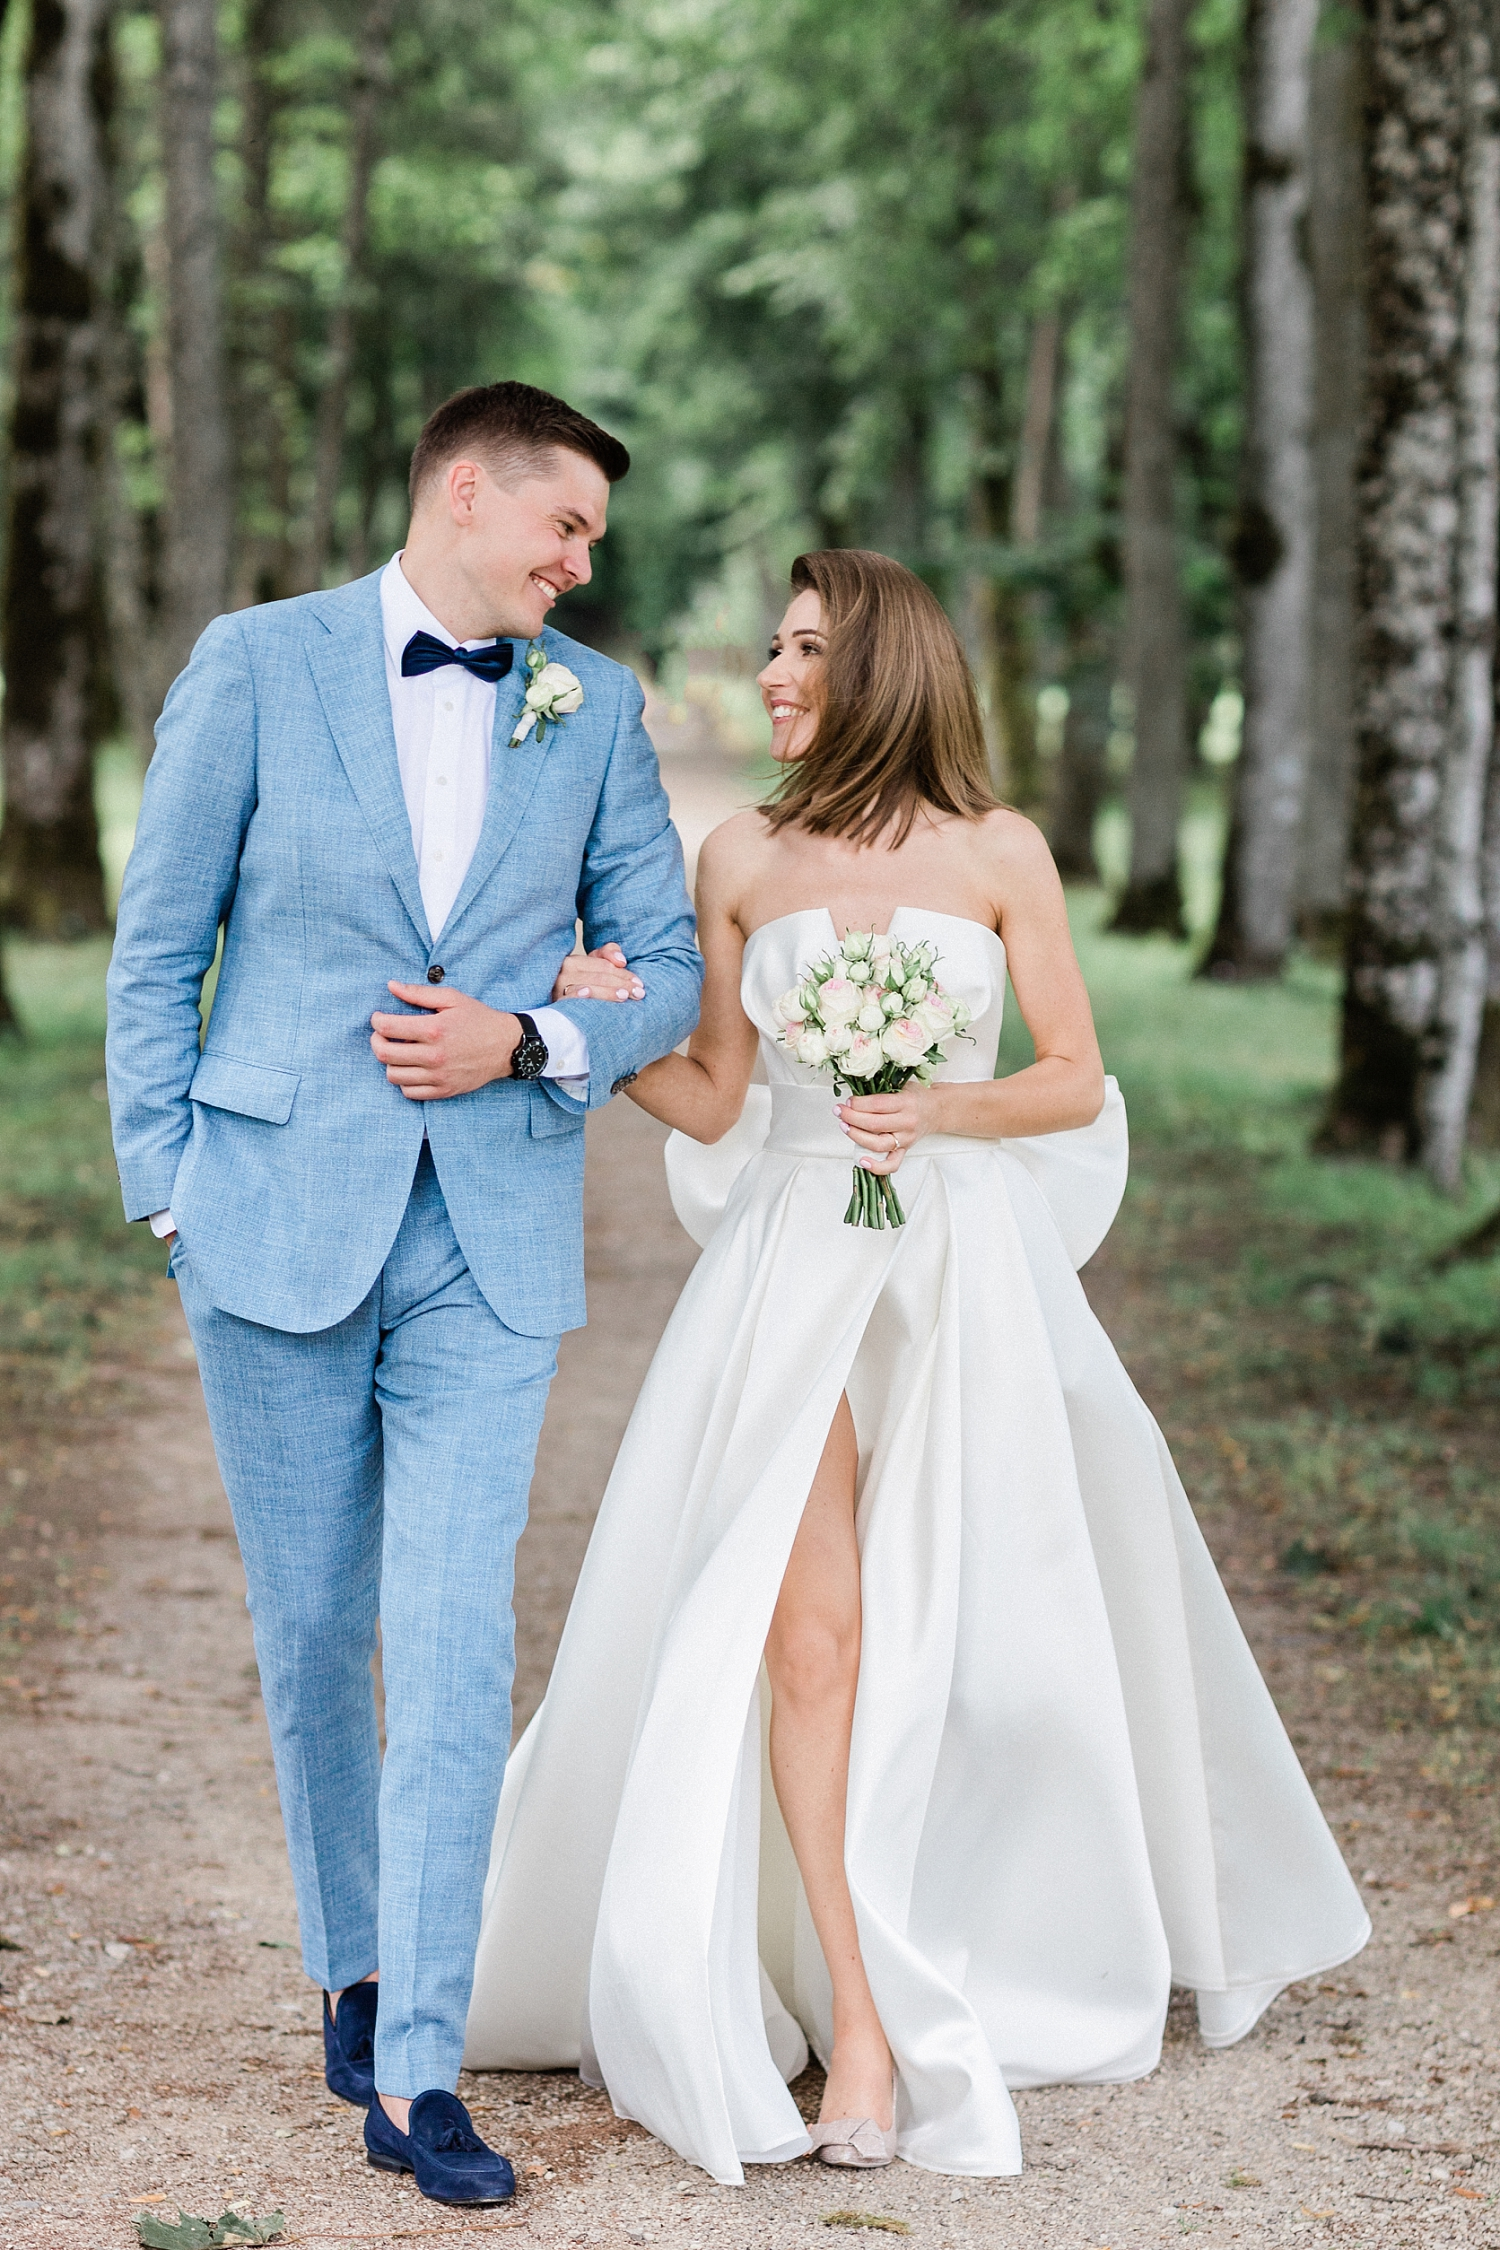 bride and groom enjoying a moment together amongst the trees- photo by Jurgita Lukos Photography